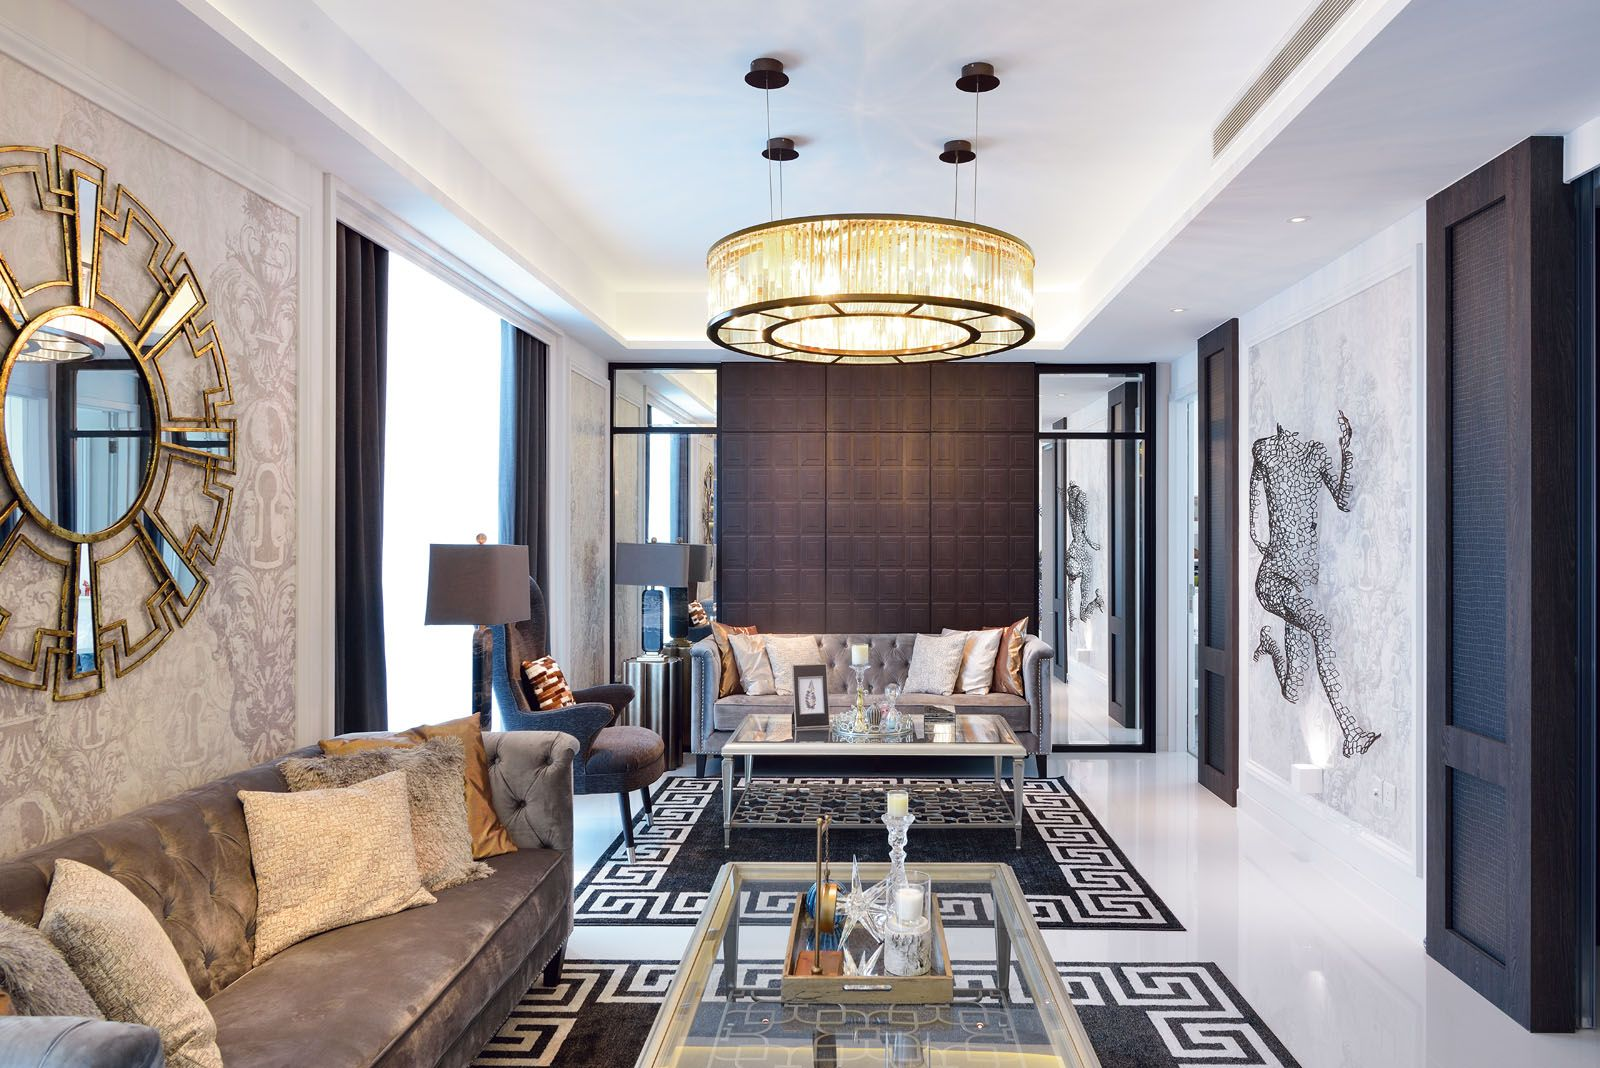 The crystal glass chandelier creates a focal point in the living room